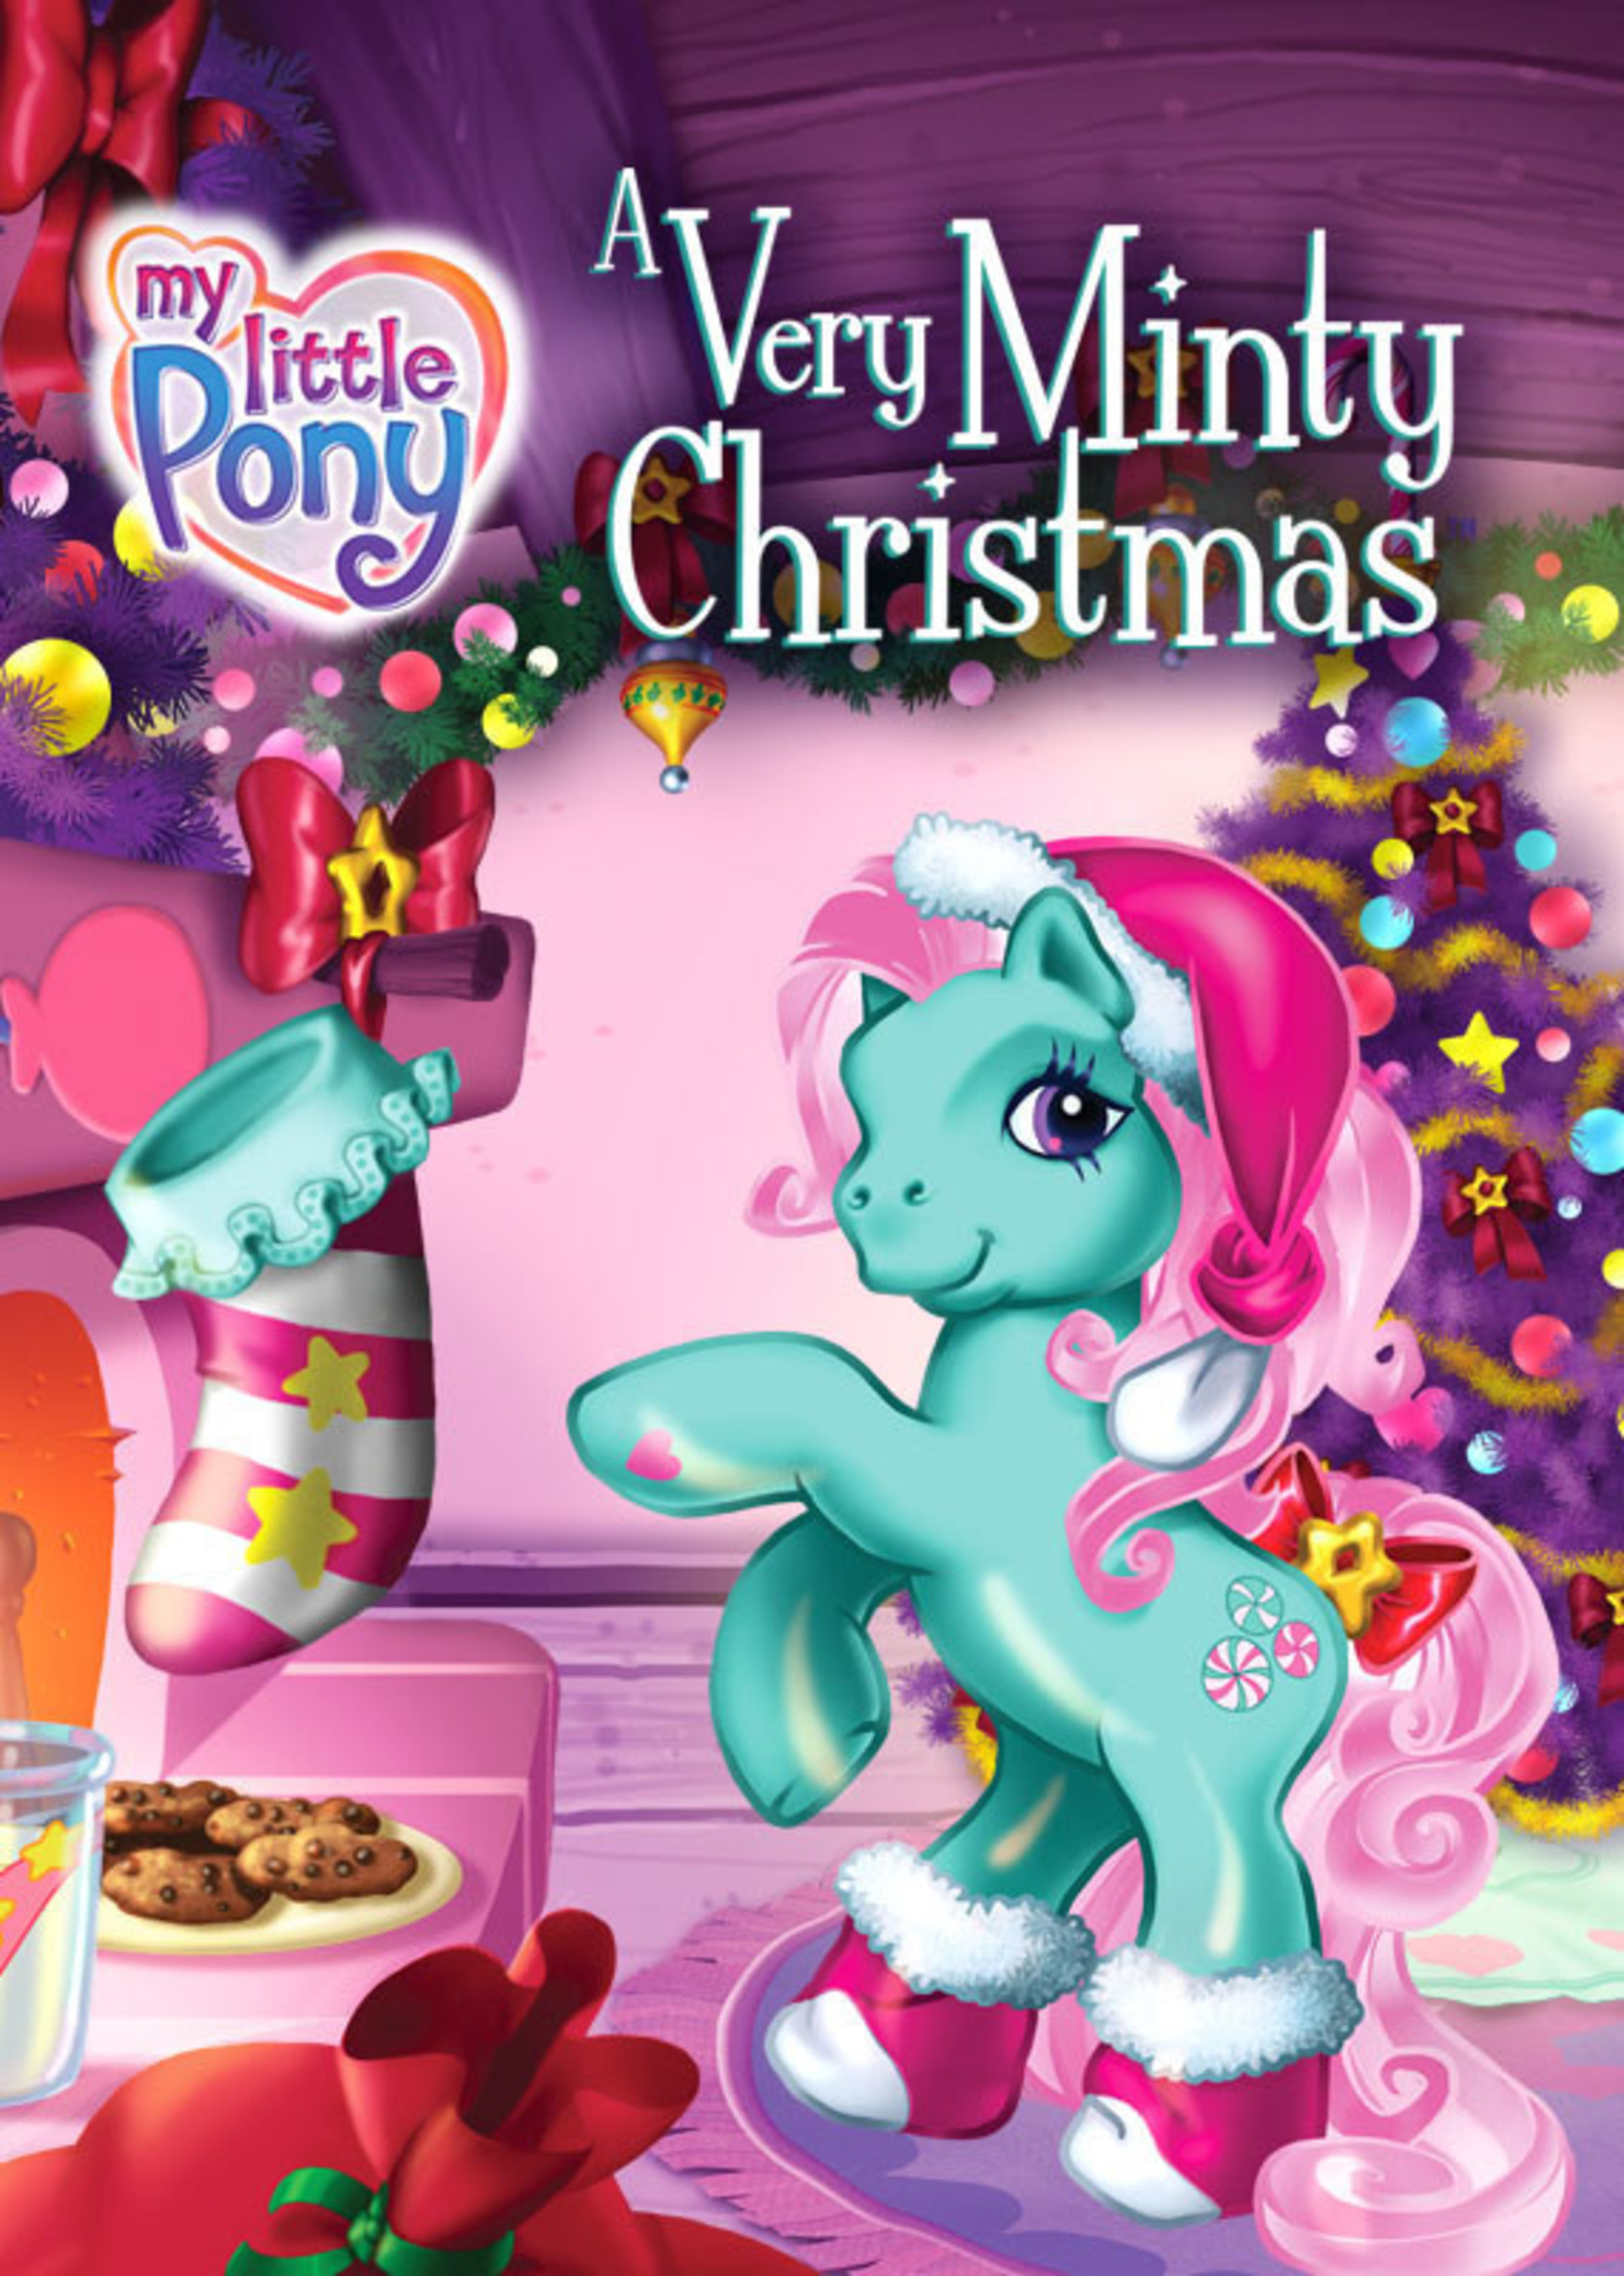 Discovery Family Premieres My Little Pony A Very Minty